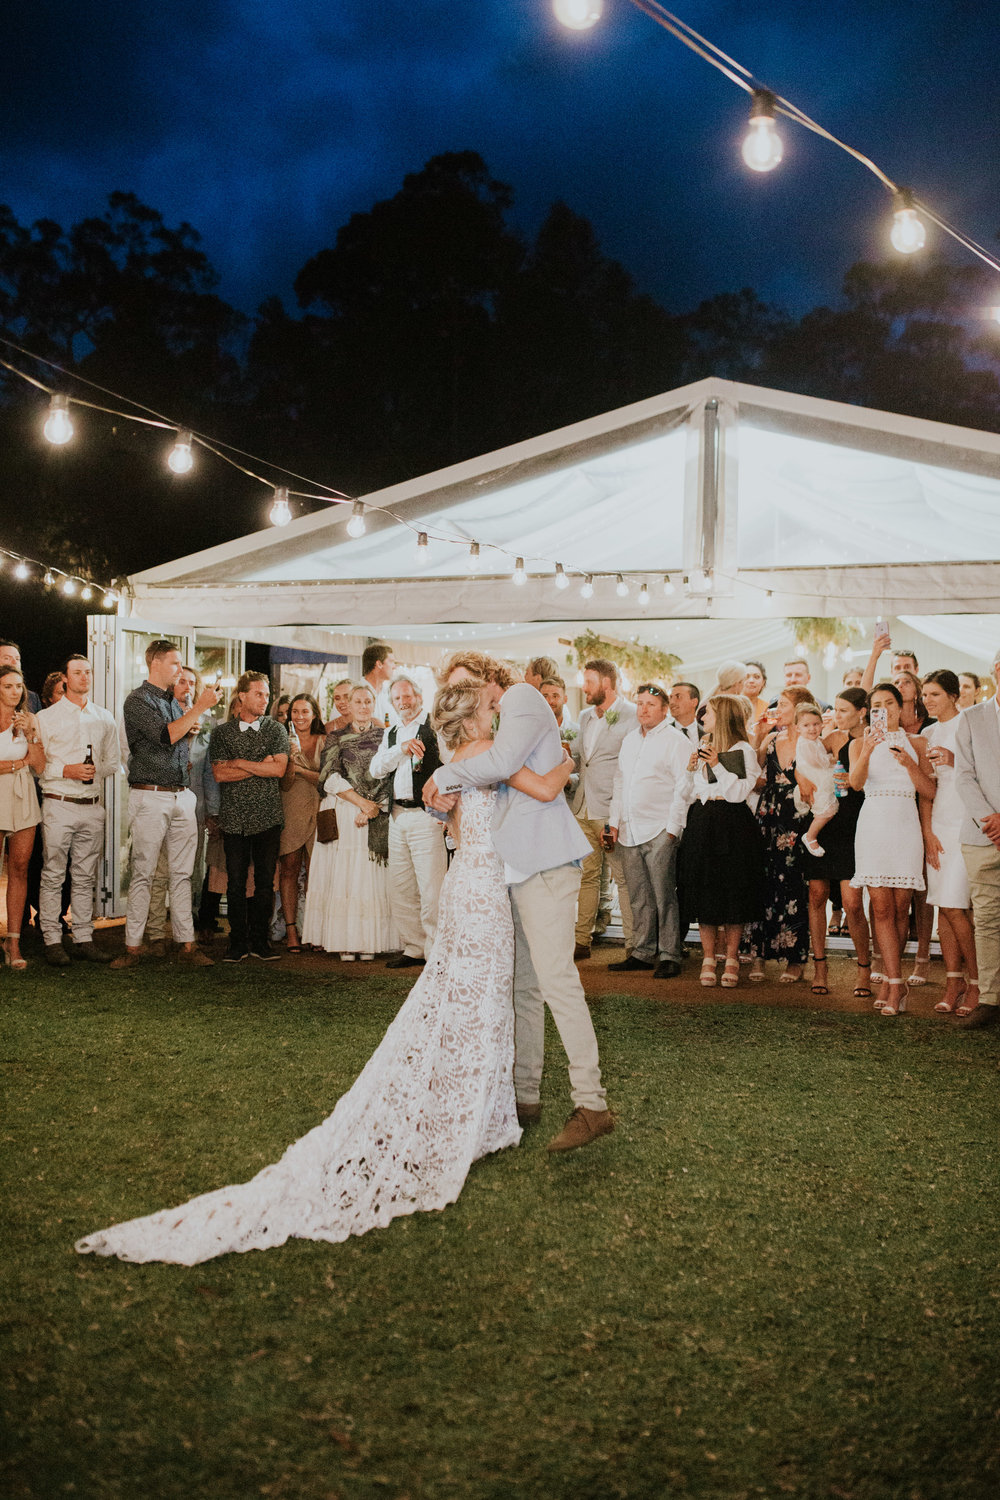 Jesse+Matt+Kangaroo+Valley+Wildwood+Boho+Relaxed+wedding+-225.jpg